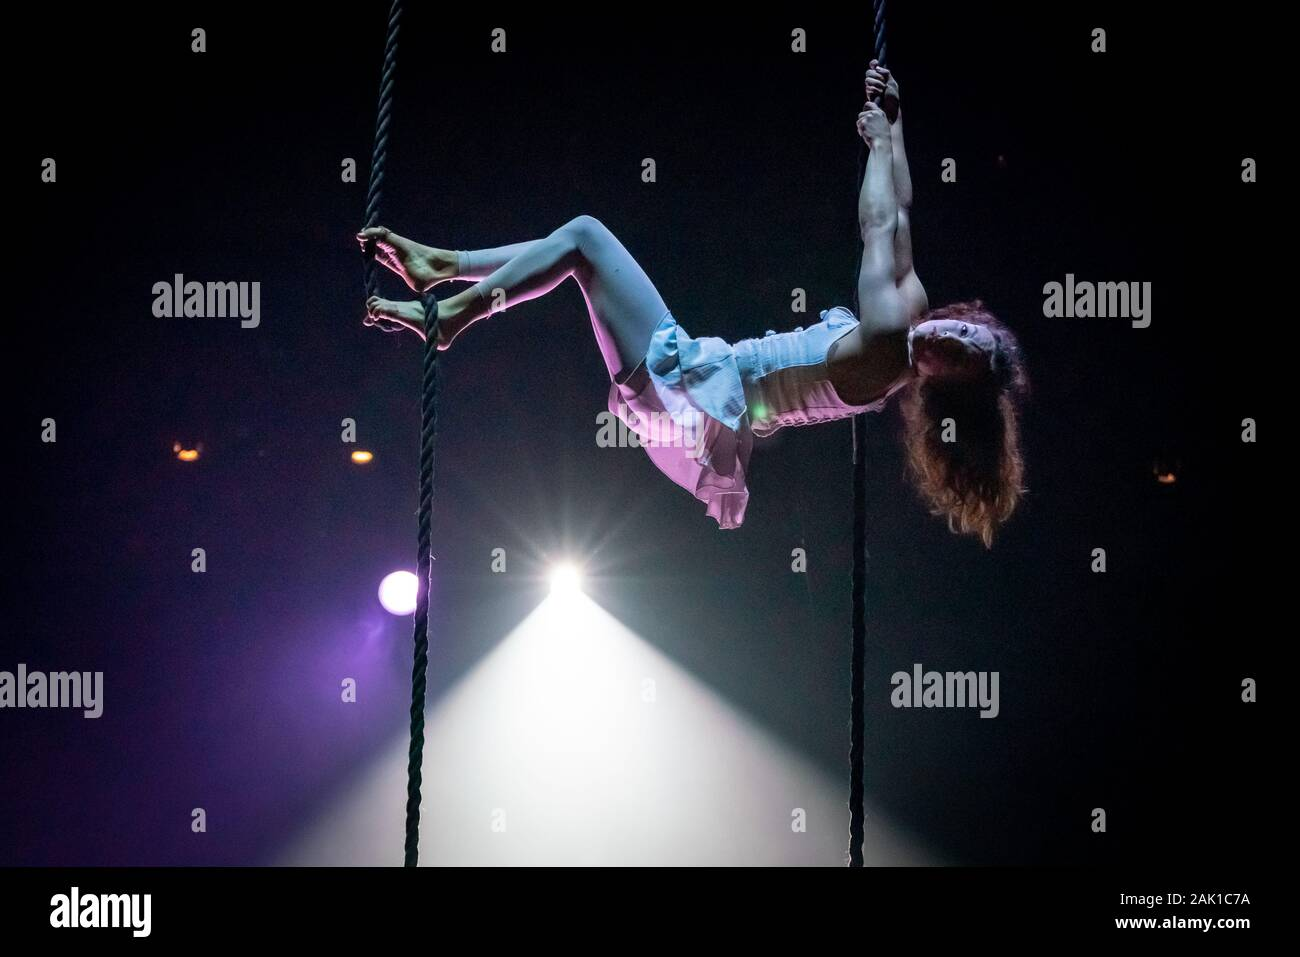 "NoFit State Circus performs their new show ""Lexicon"" at the Roundhouse venue in north London, UK. Stock Photo"